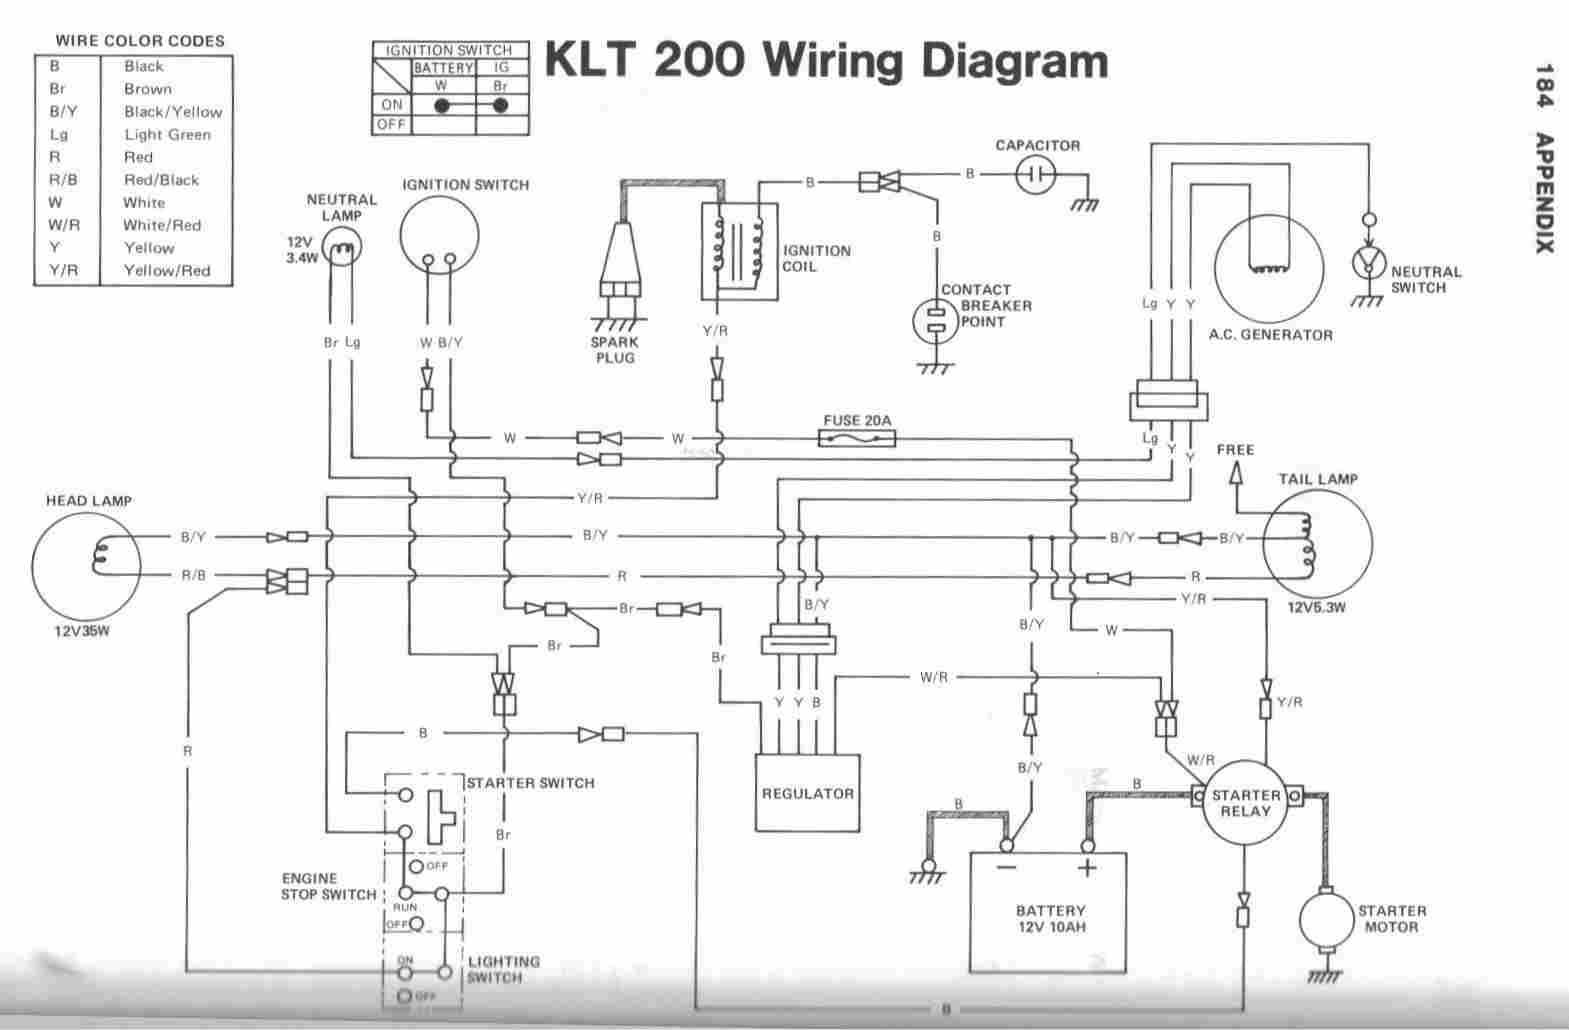 Electric Wire Diagram : Residential electrical wiring diagrams pdf easy routing